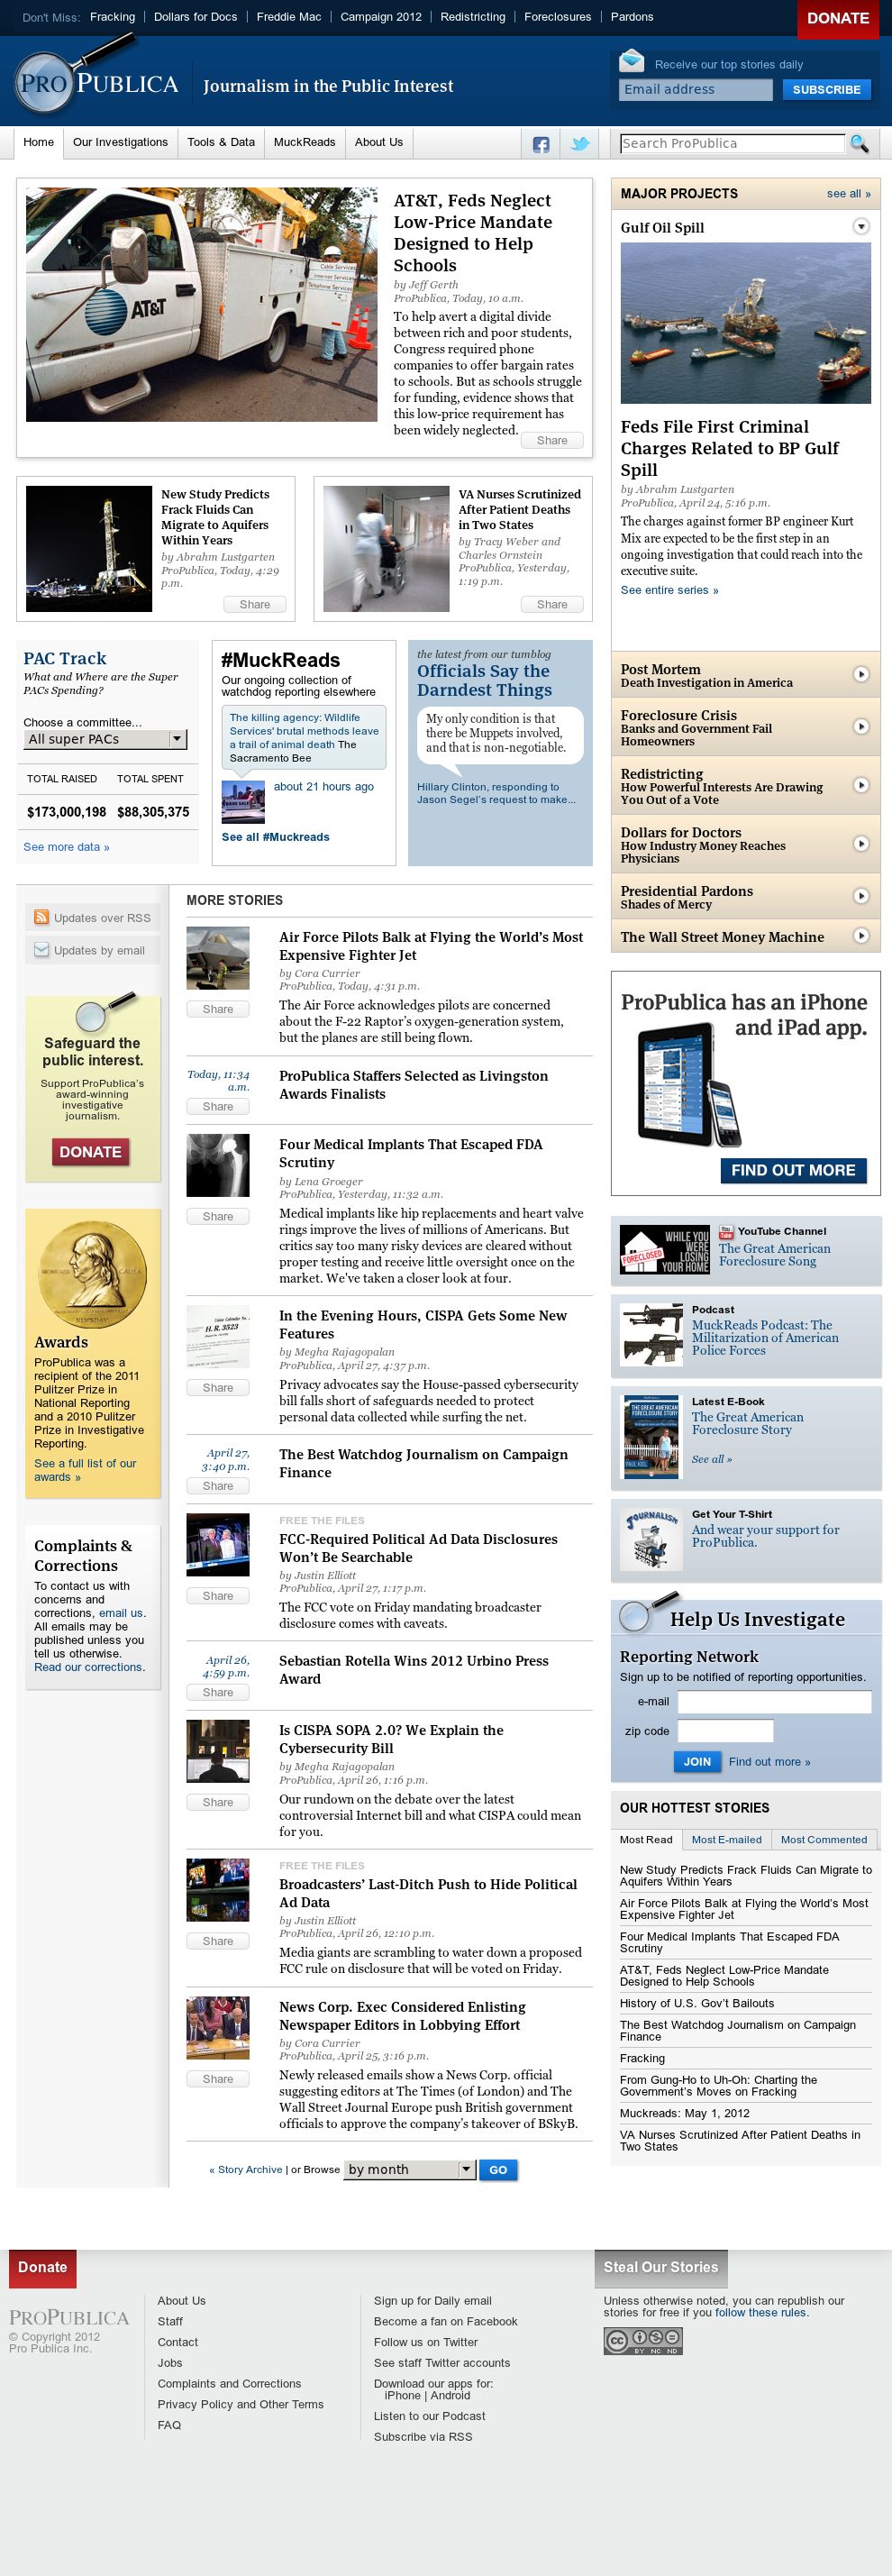 ProPublica at Wednesday May 2, 2012, 2:11 a.m. UTC